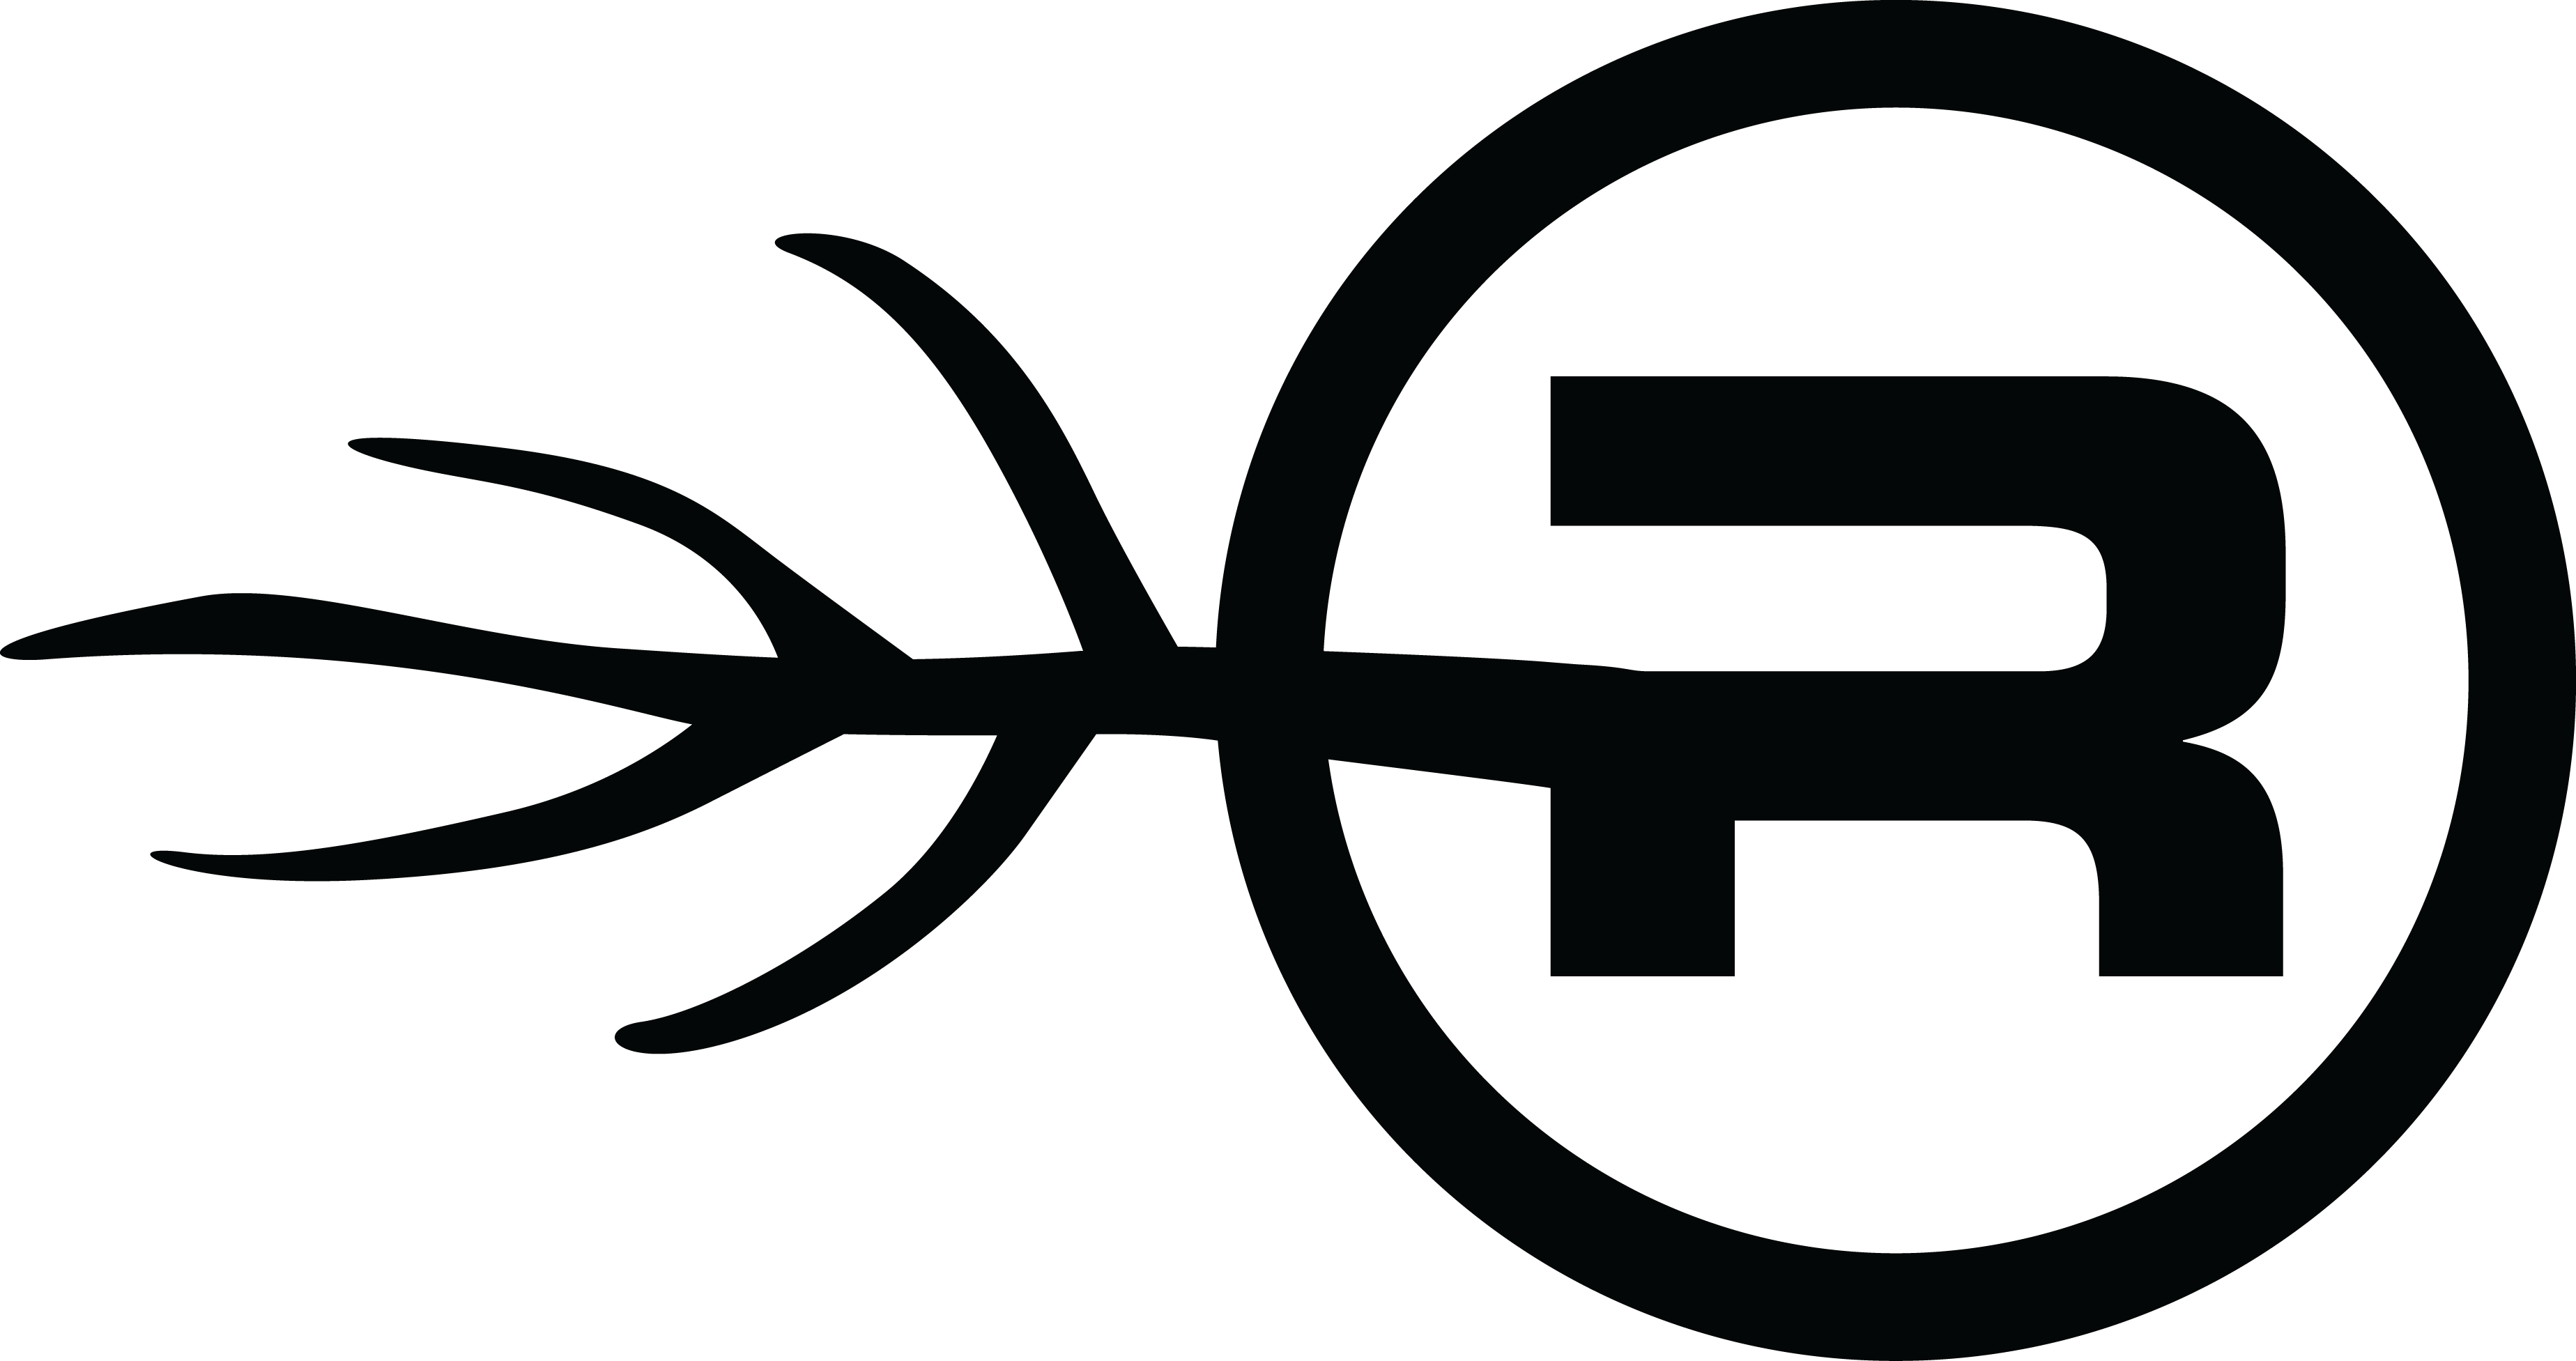 the official RCSG logo, a black letter R surrounded by a circle, with a branch coming out